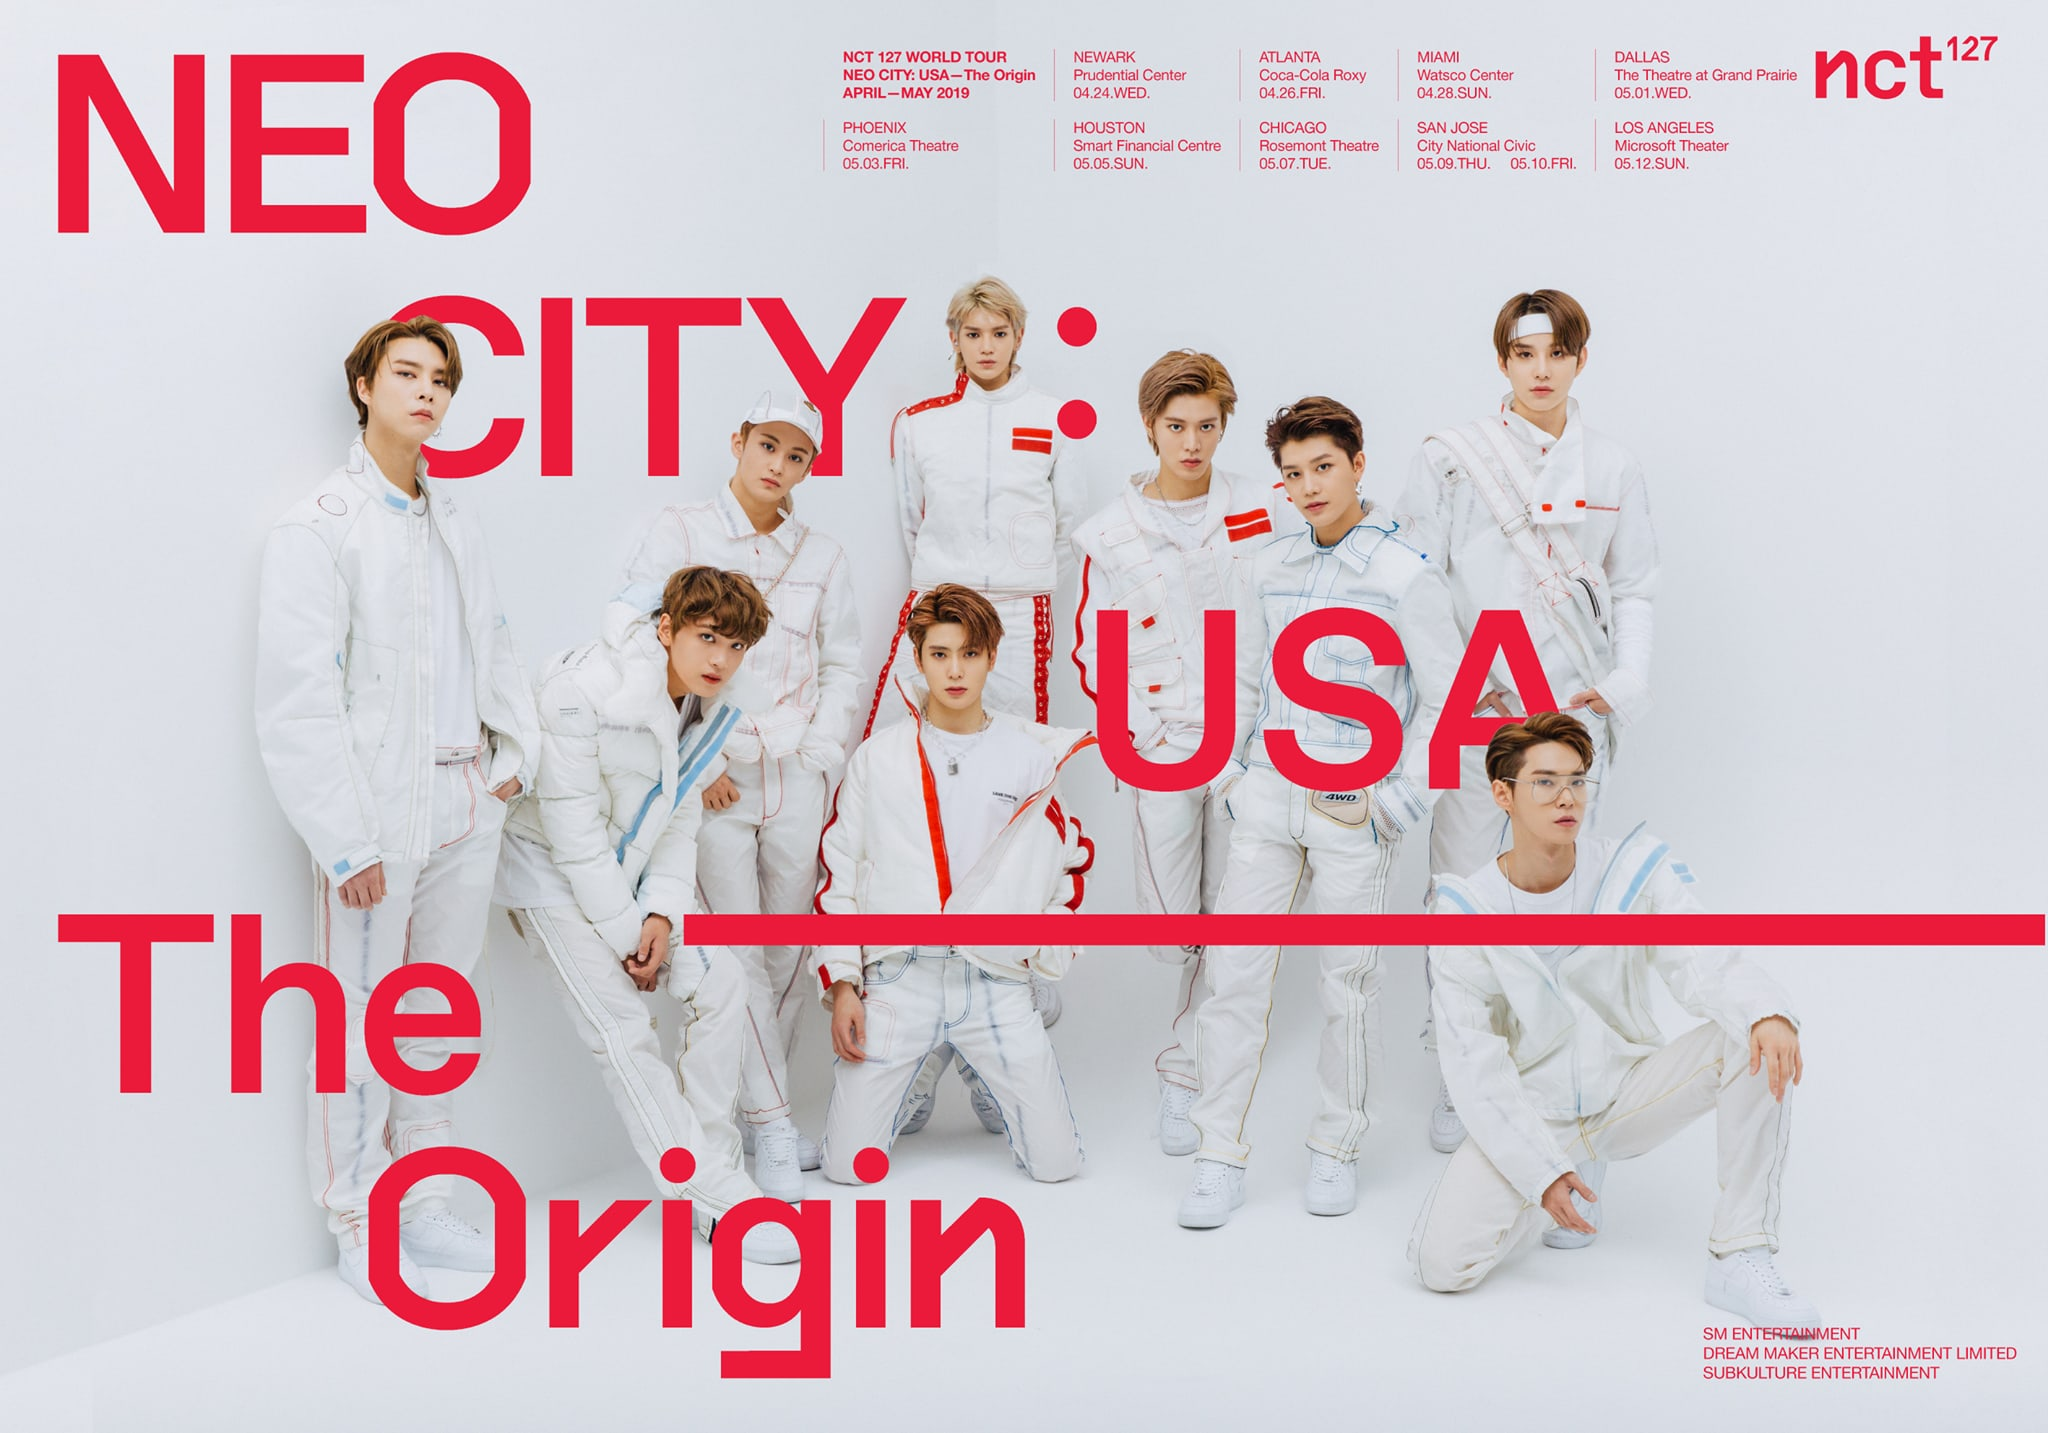 Image result for nct 127 north america tour